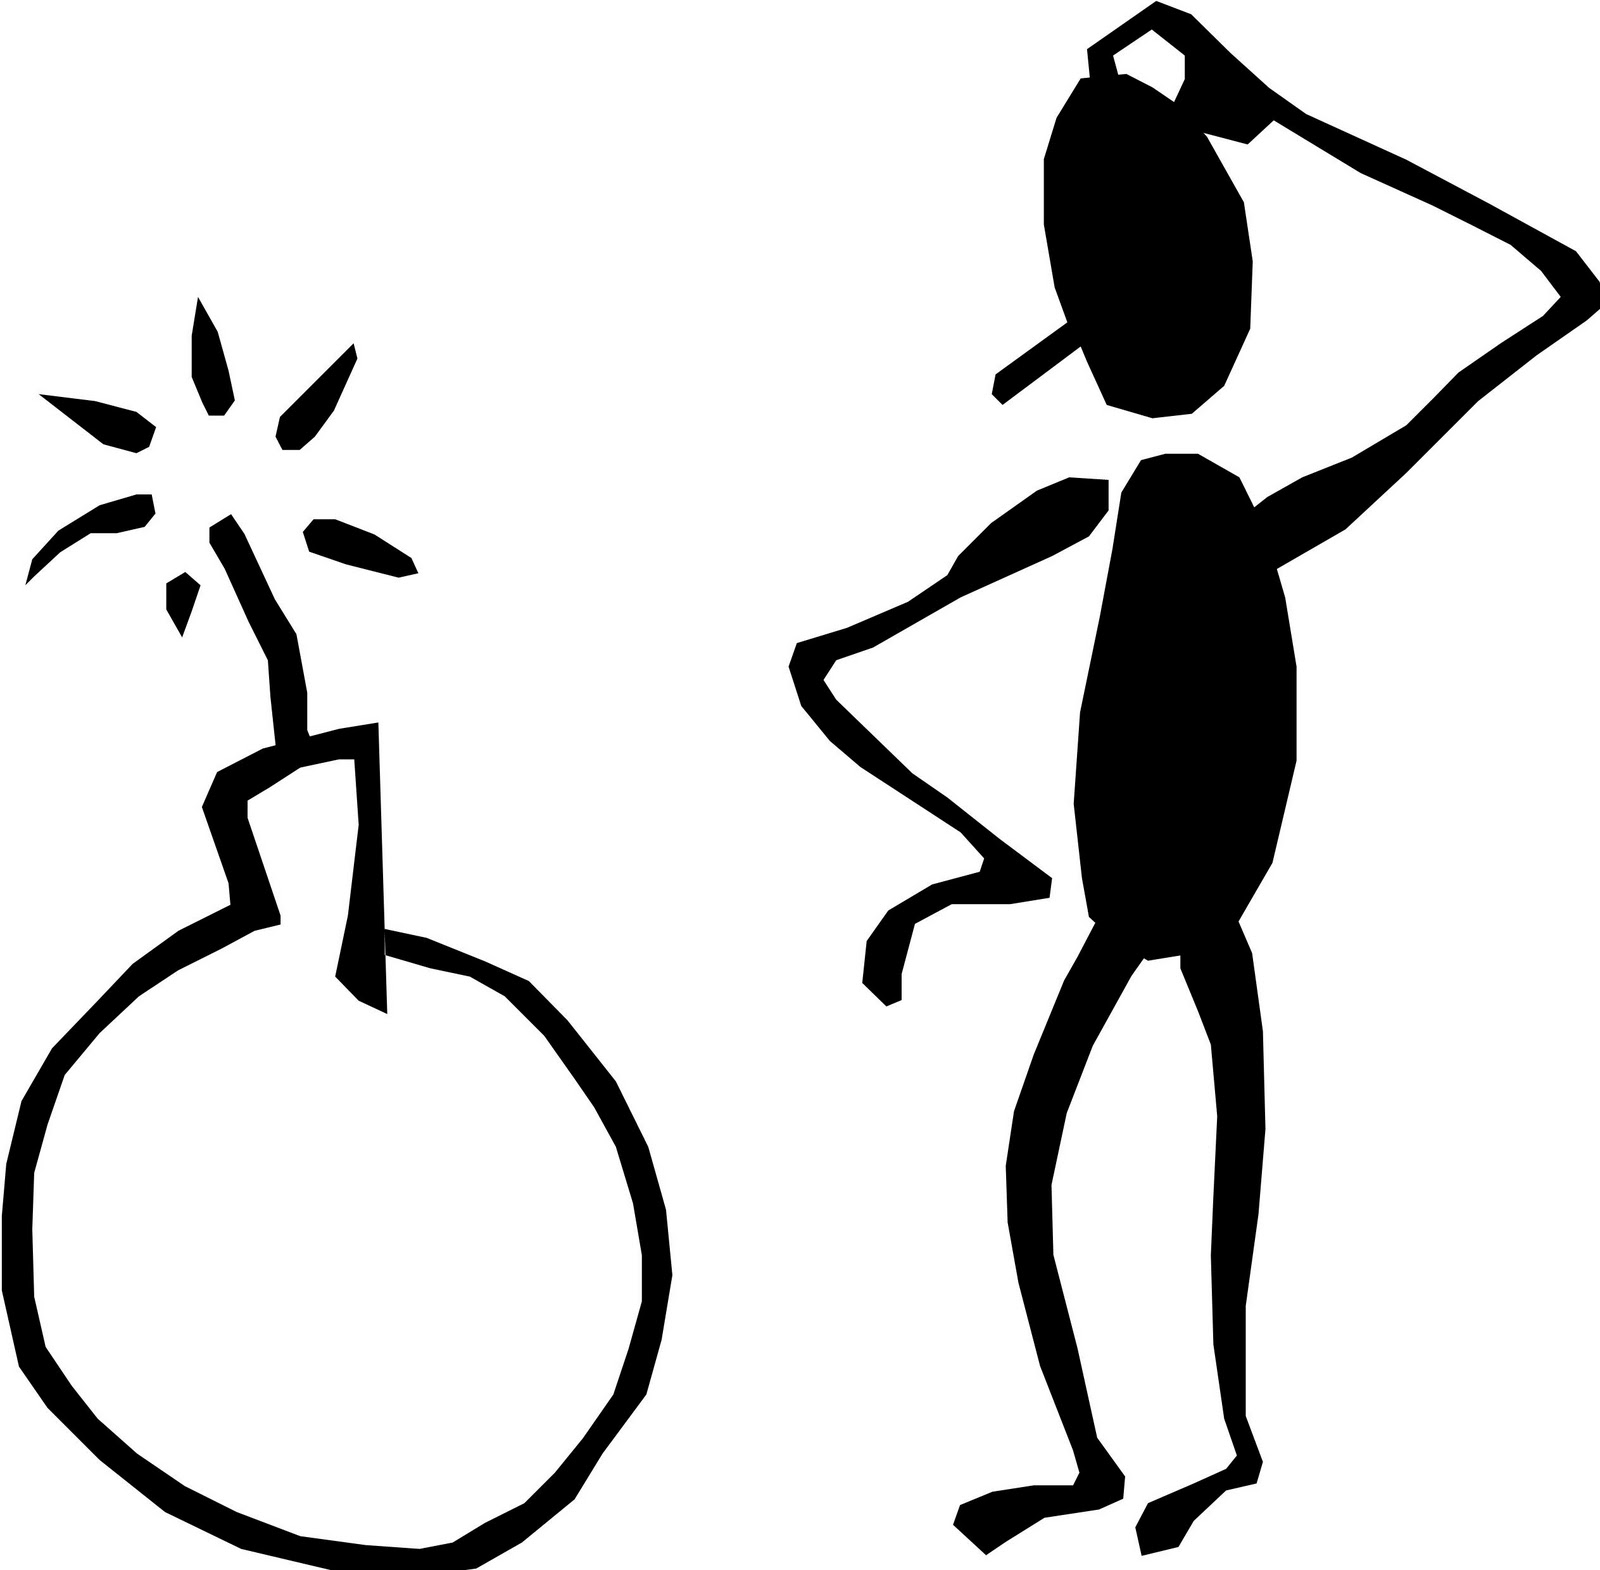 Thinking stick figure clipart clipart